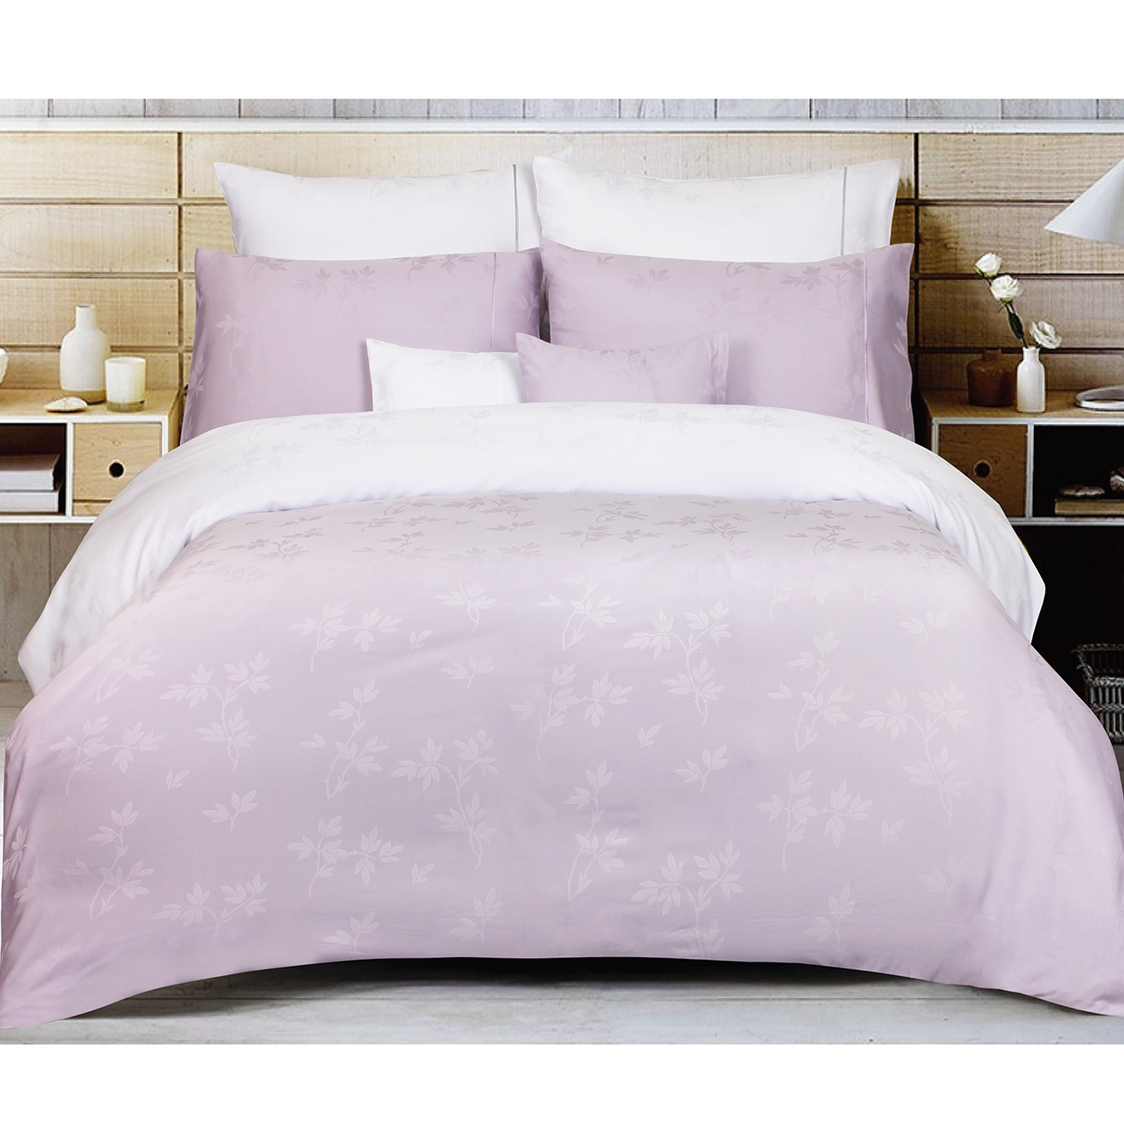 Celestine Bamboo Micro Modal Breeze Fitted Sheet Set Lavender